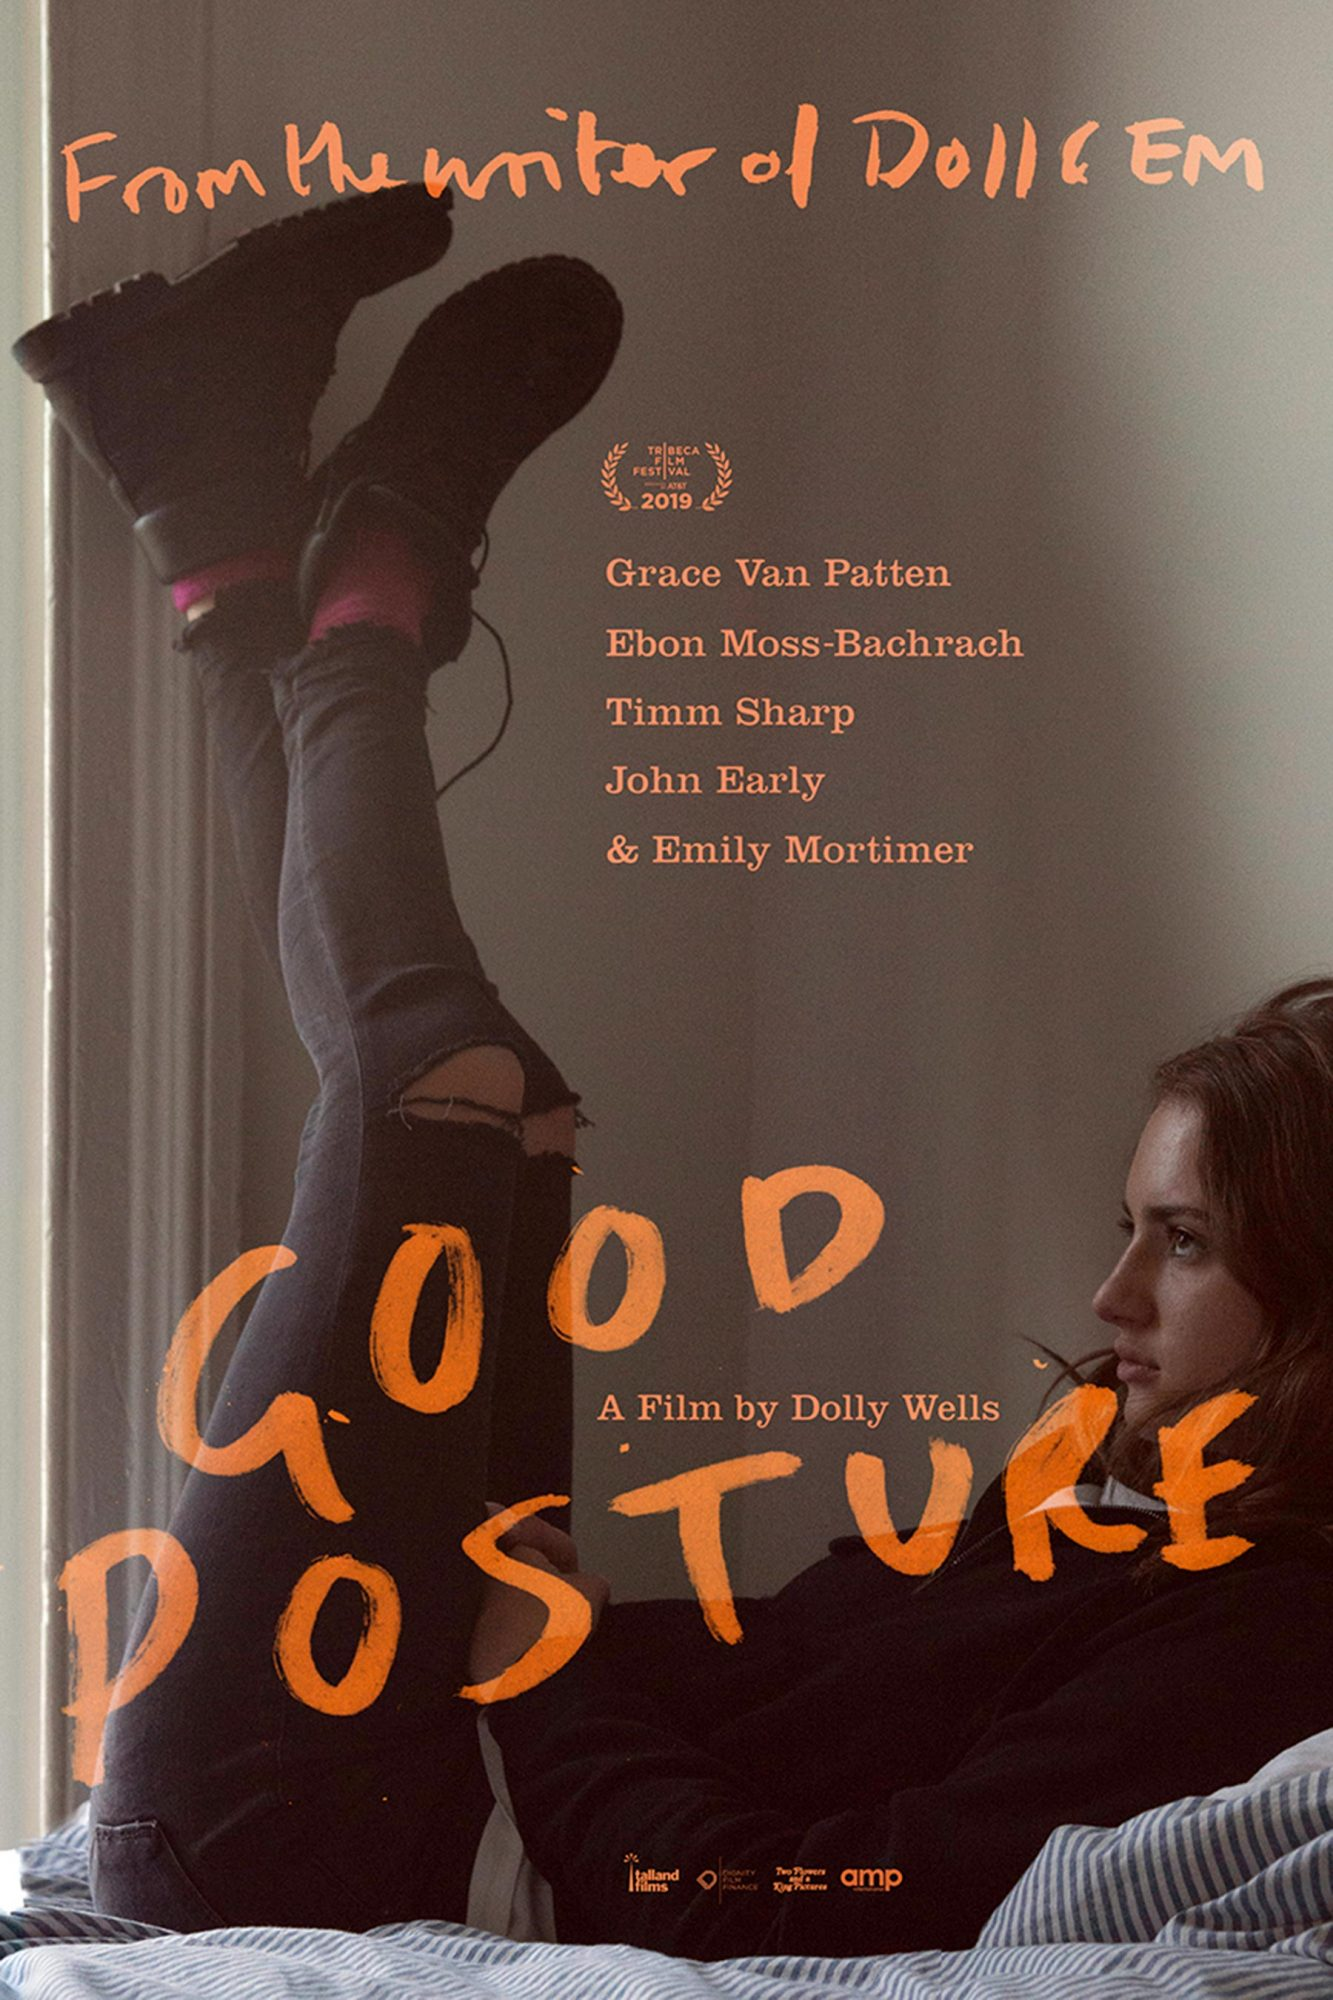 Good Posture posterCR: Talland Films